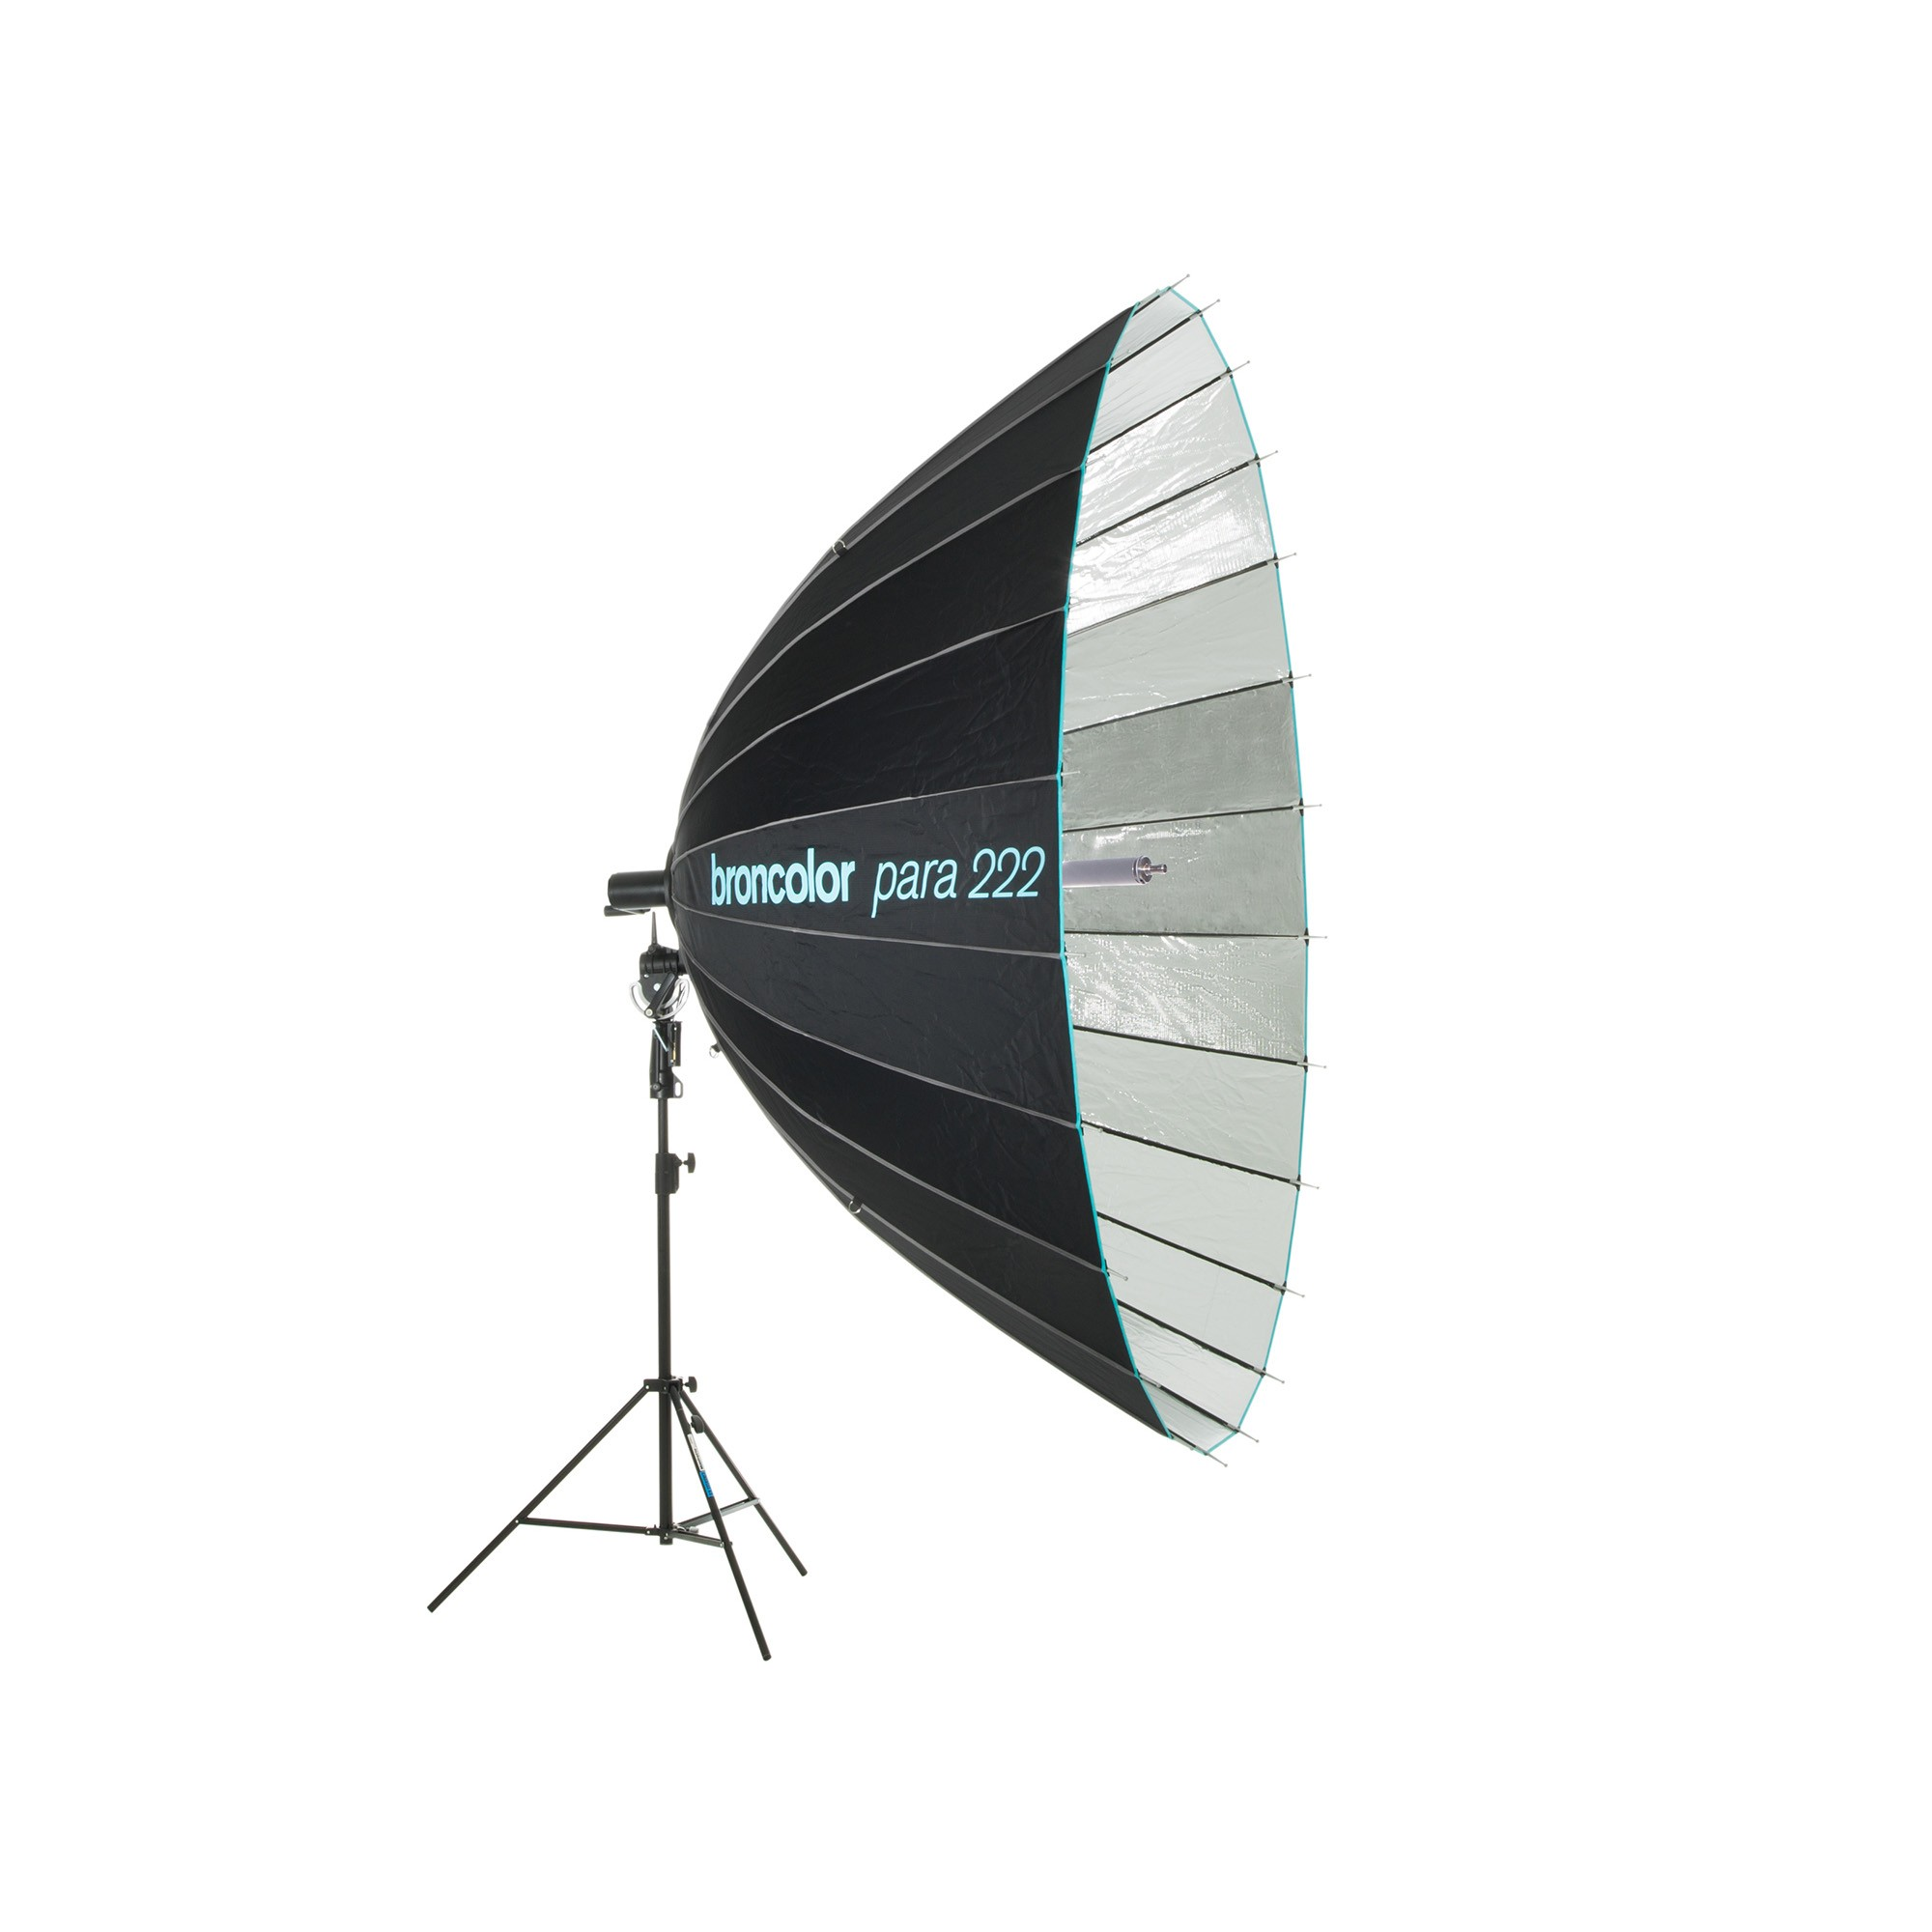 Broncolor Para 222 available to rent / verhuur / location at 50.8 Studio • Belgïe, Belgique, Belgium, Hasselblad, Huur, Location, Louer, Photo, Rent, Rental, Strobe, Studio, Verhuur, Video